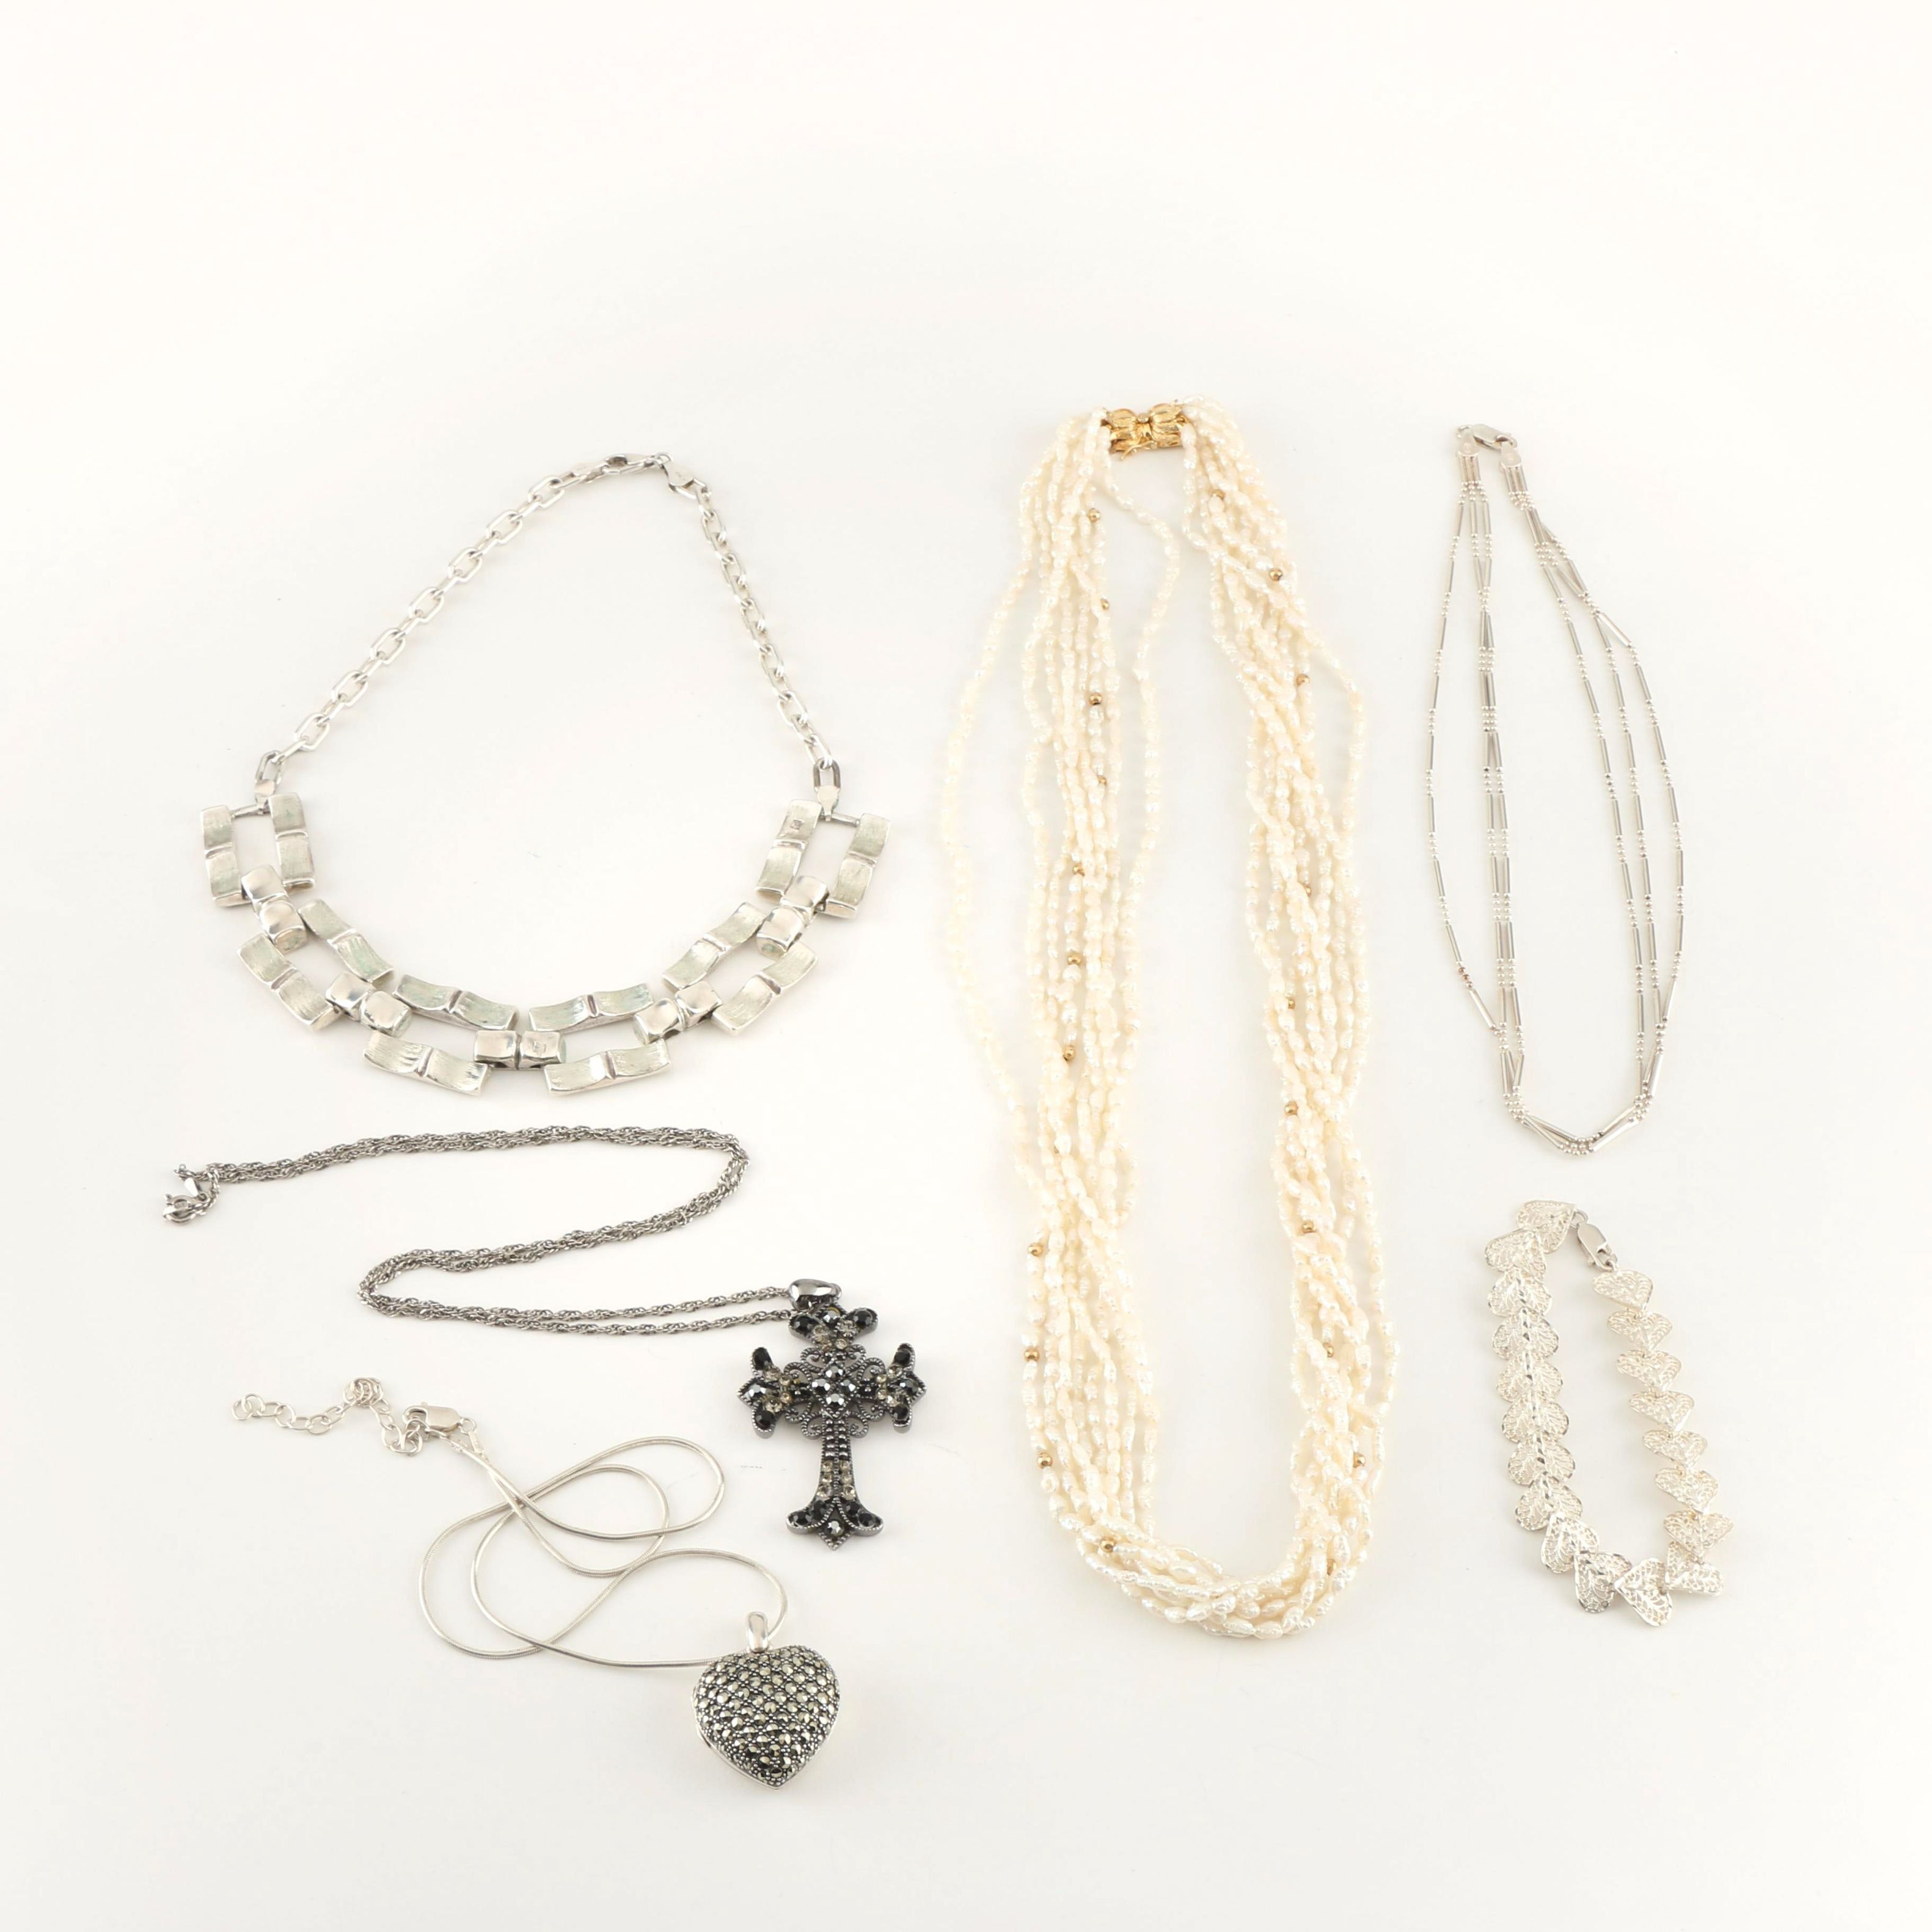 Assortment of Sterling Silver Jewelry and Cultured Freshwater Pearl Necklace